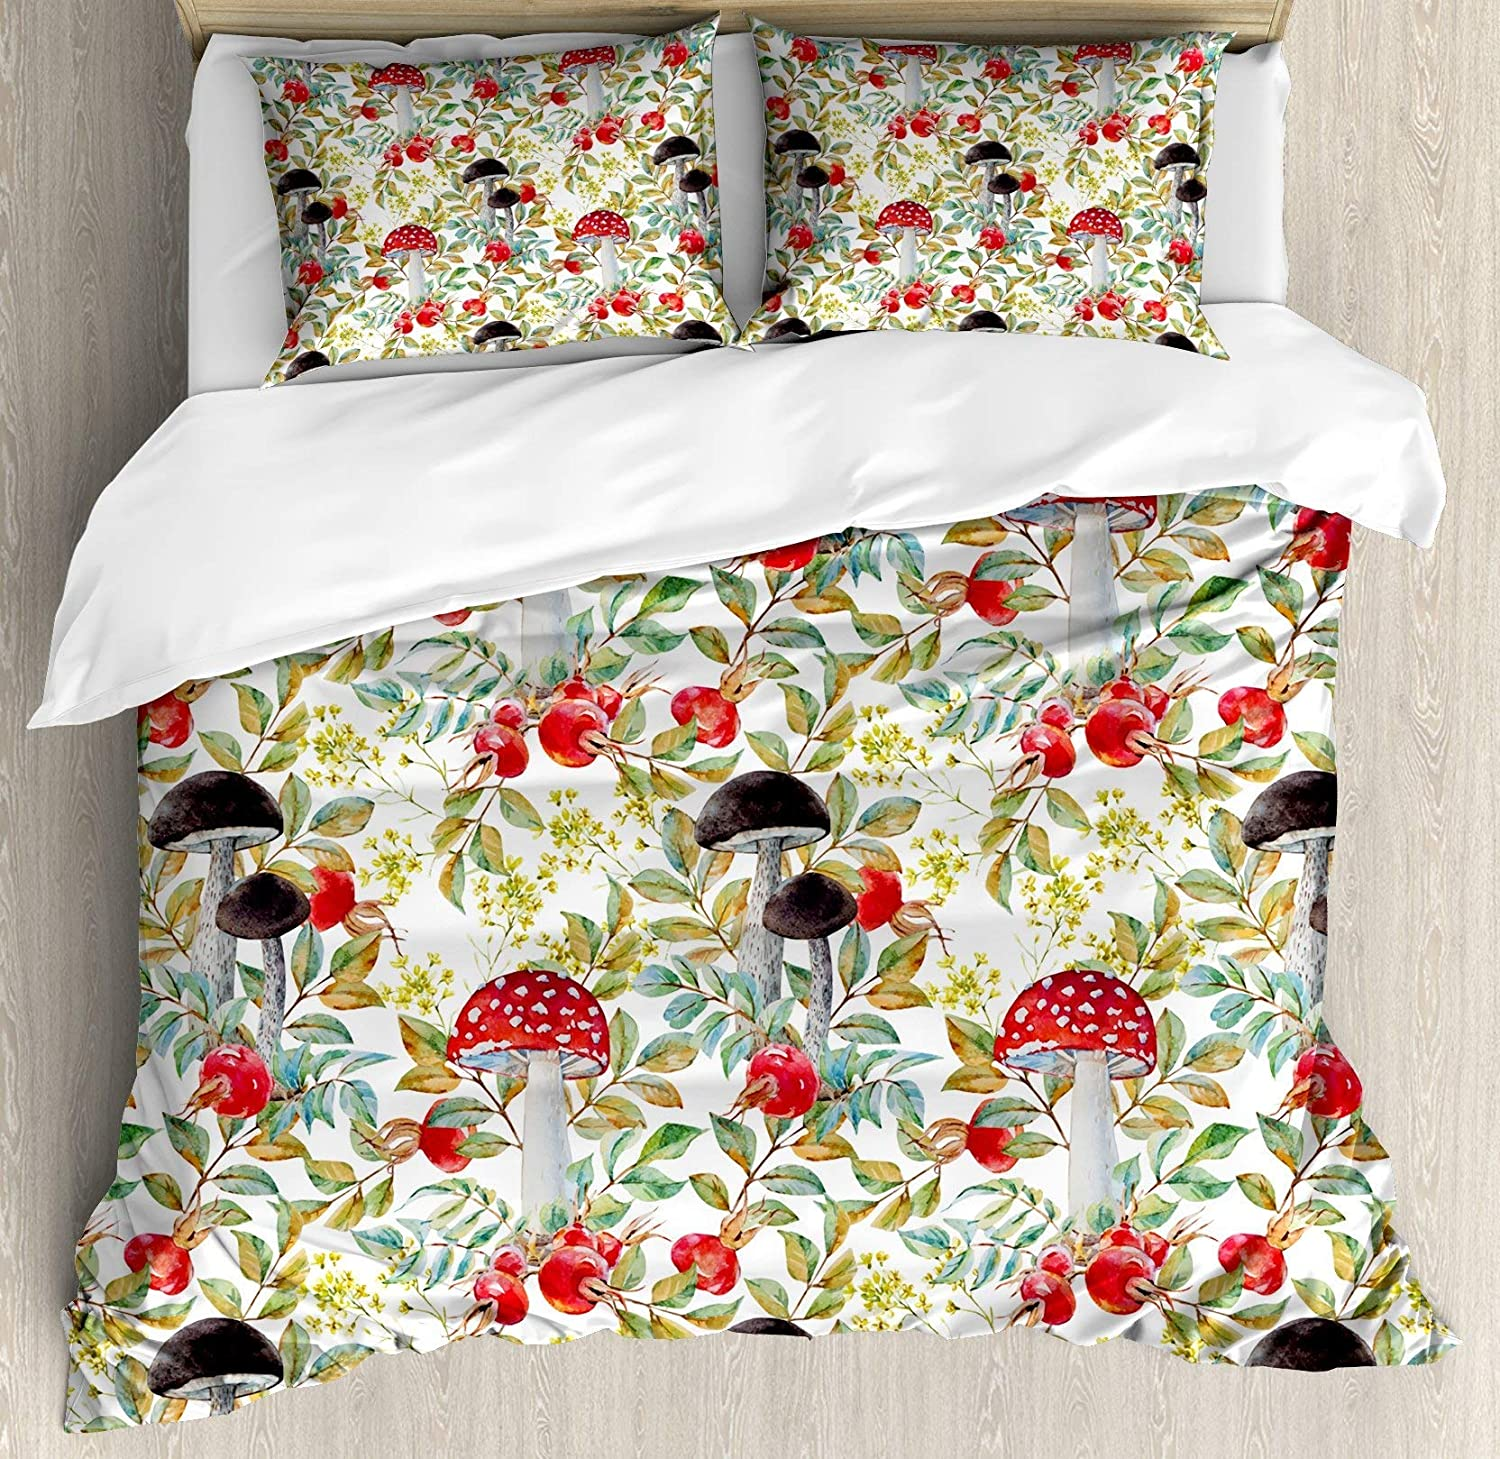 BULING Watercolor 4pc Bedding Set Queen Size, Hand Drawn Dogpink and Mushrooms Autumn Leaves Berries Amantias Nature Inspired Floral Lightweight Microfiber Duvet Cover Set, Multicolor